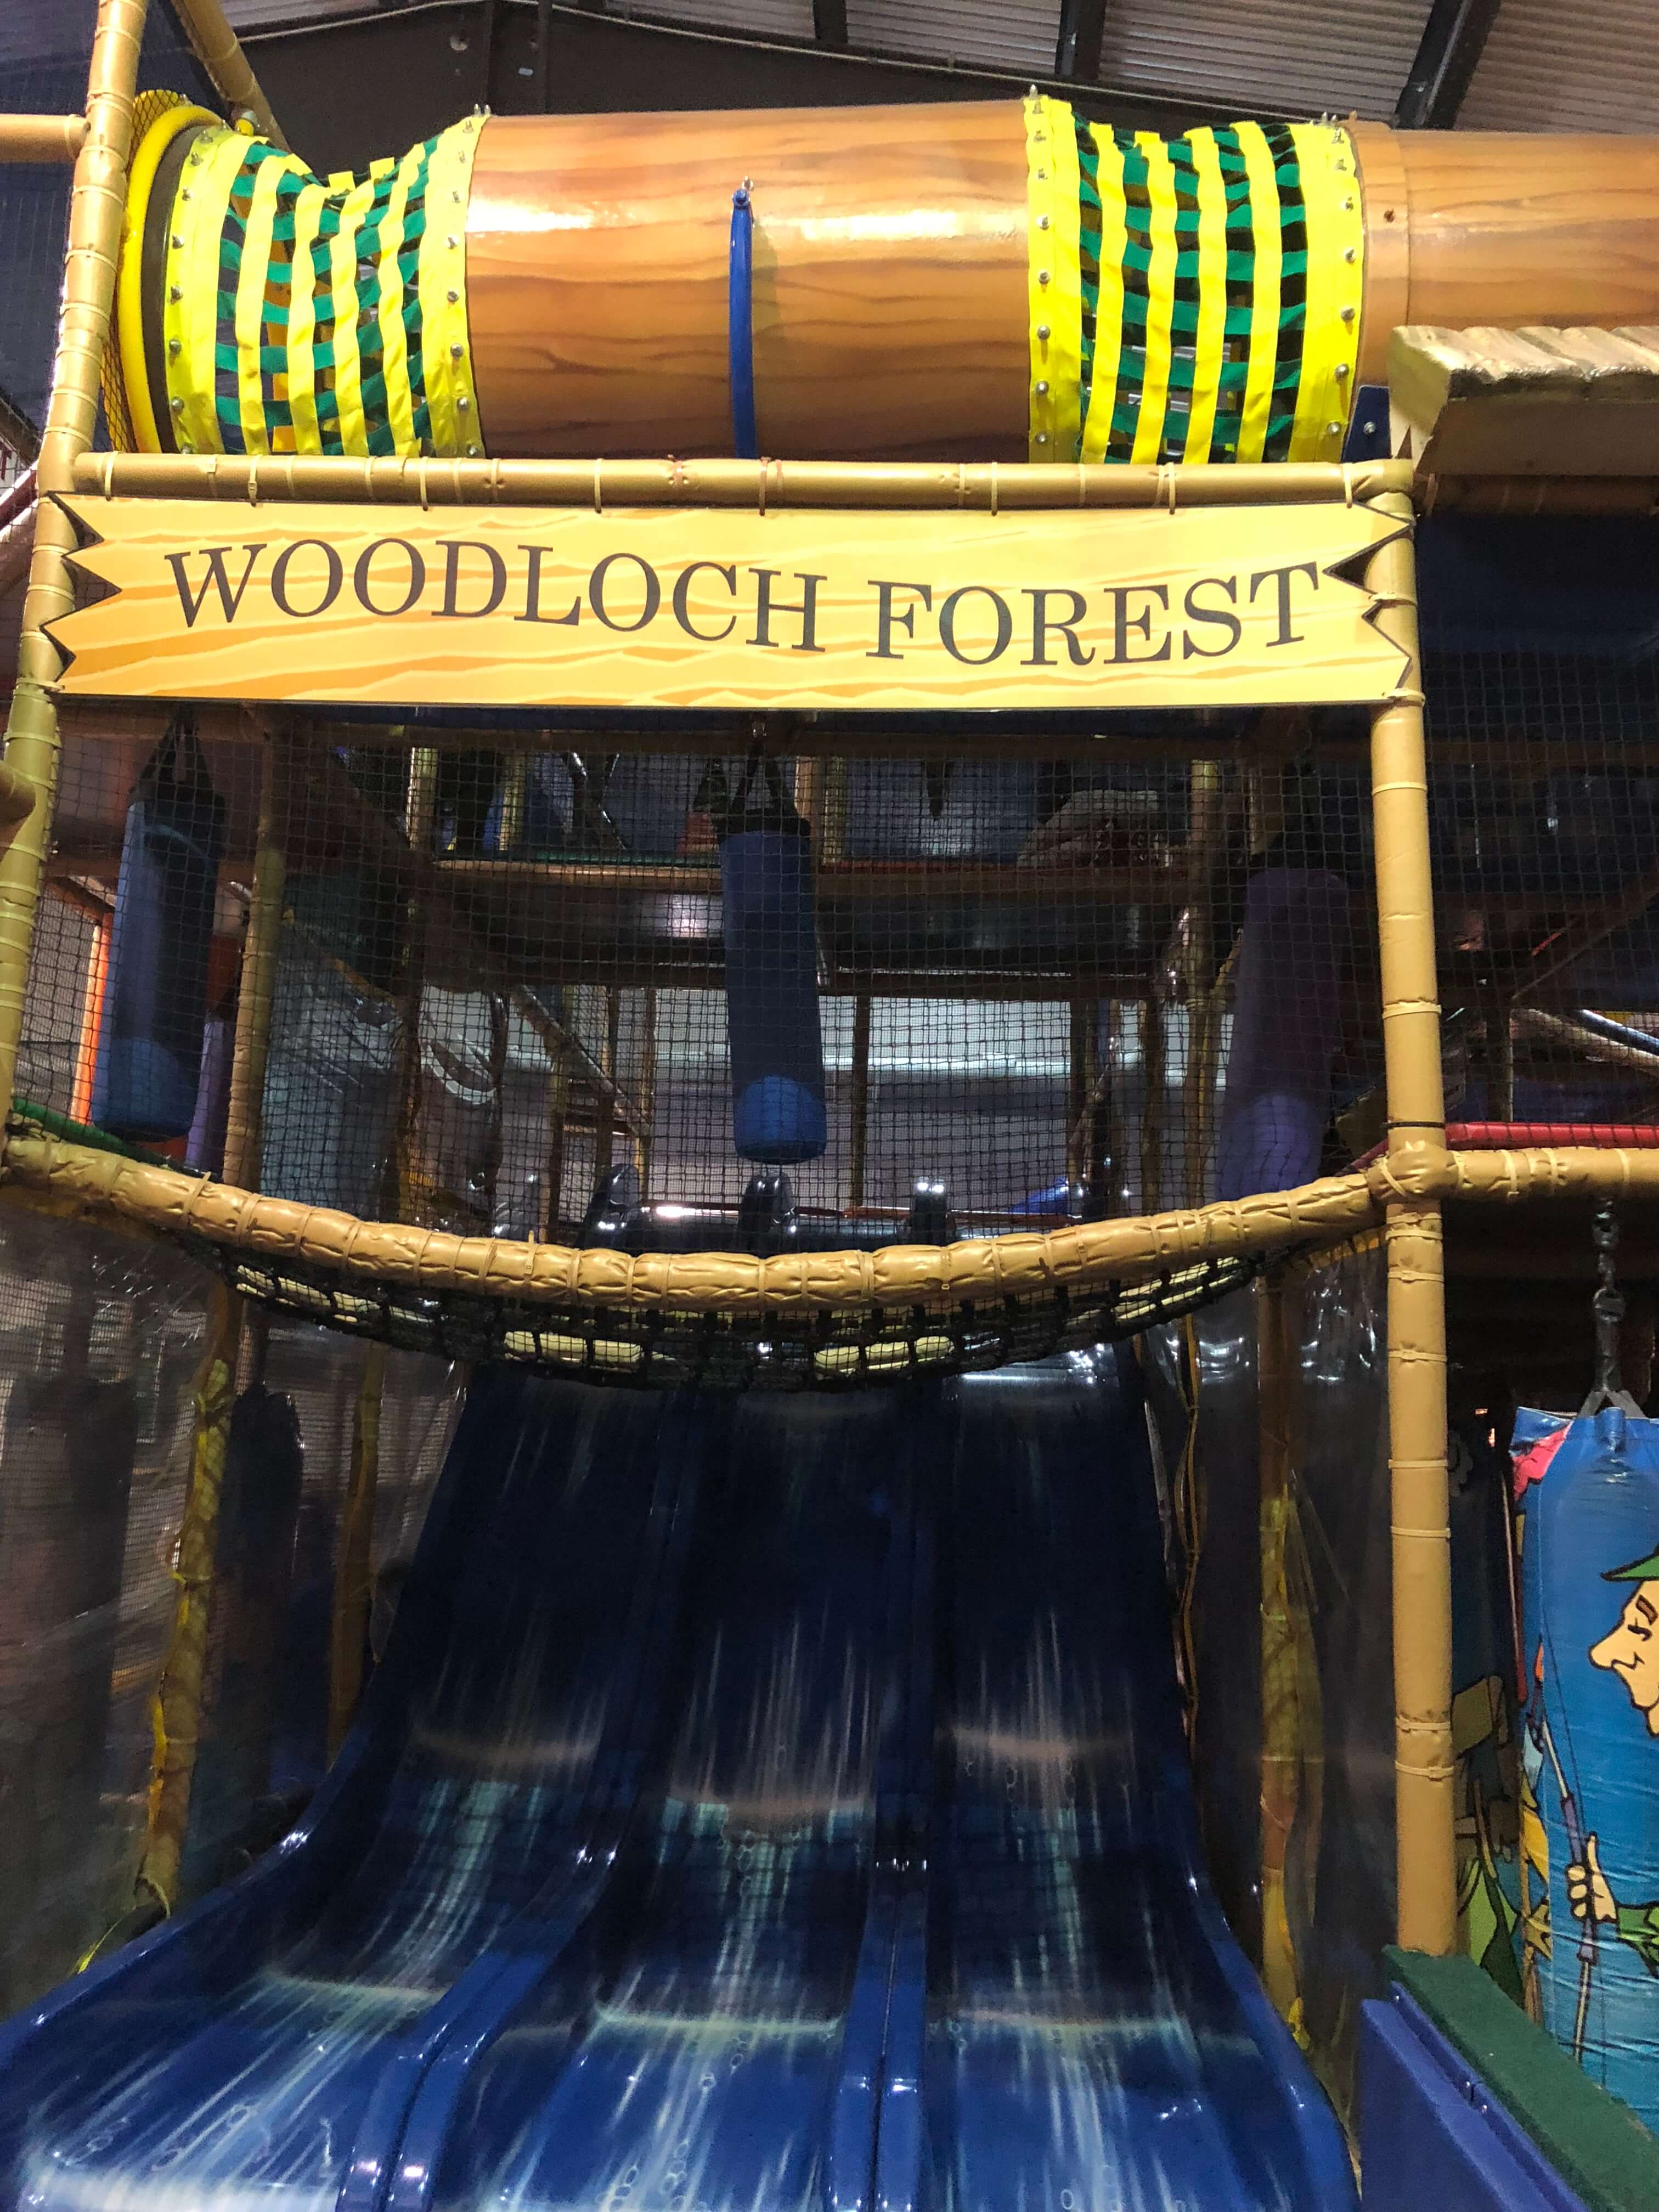 the forest Indoor Play Area at woodloch